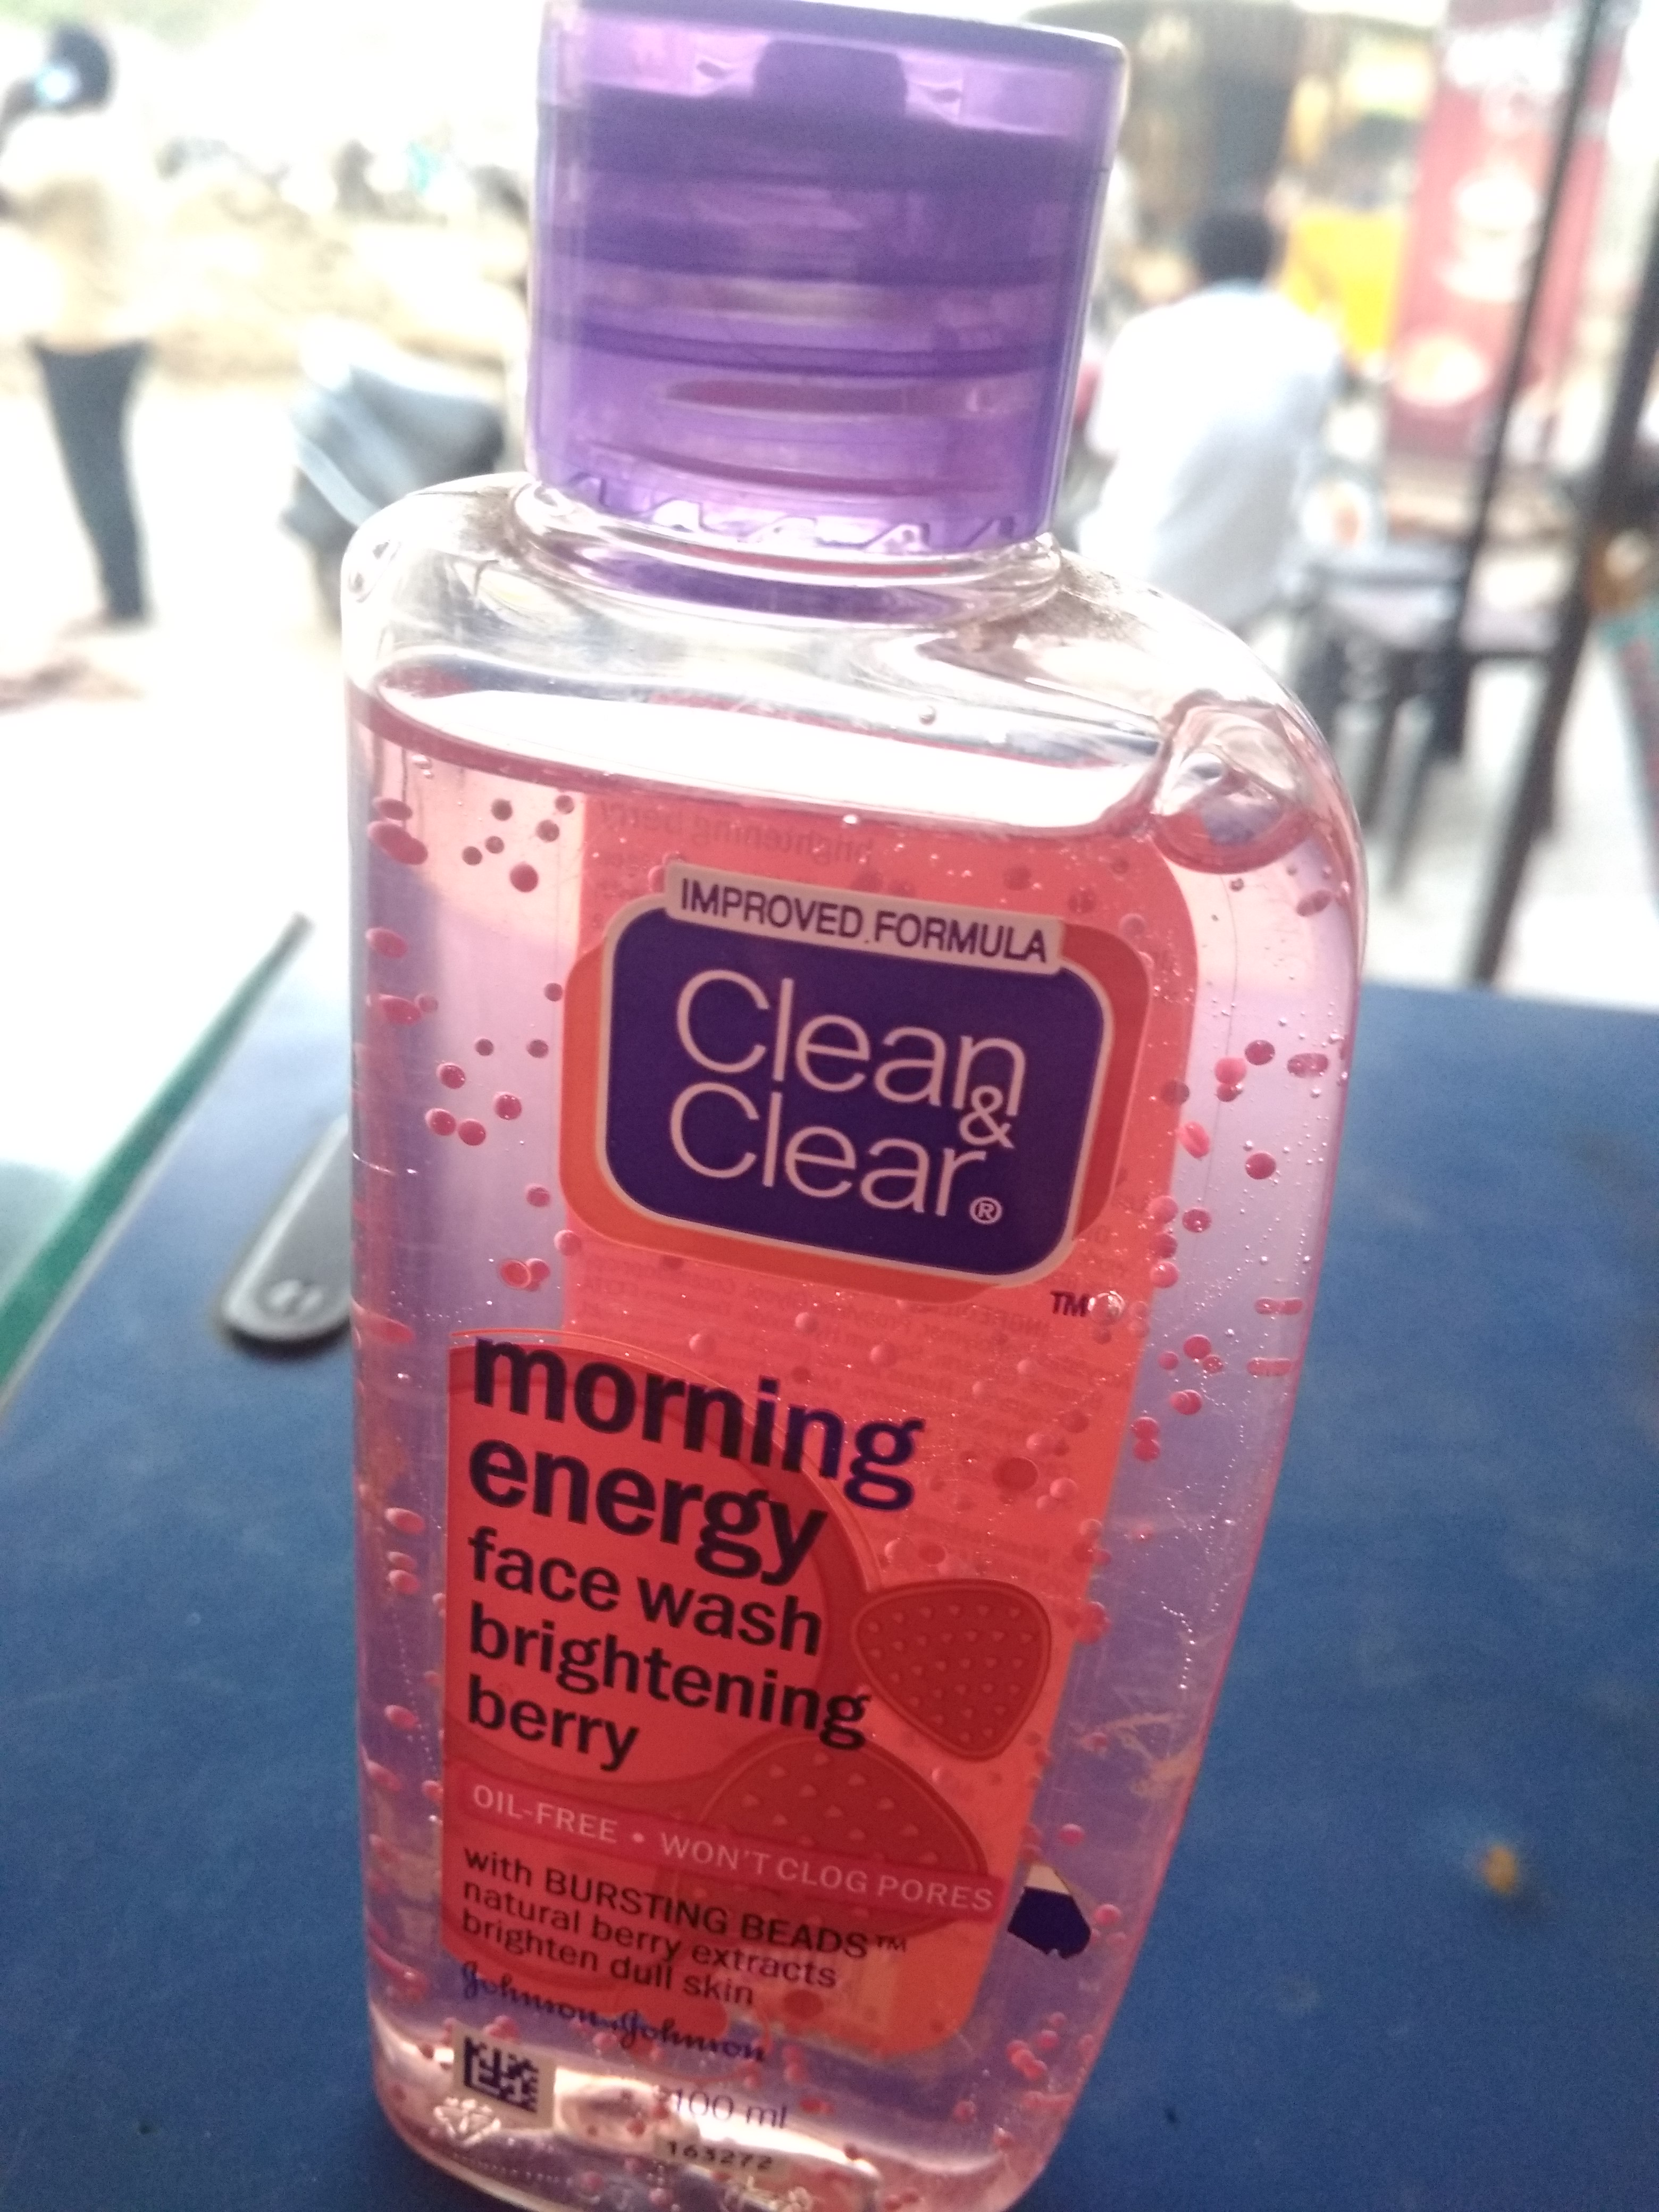 Clean & Clear Morning Energy Face Wash Brightening Berry-affective and good product-By anushka_sharma